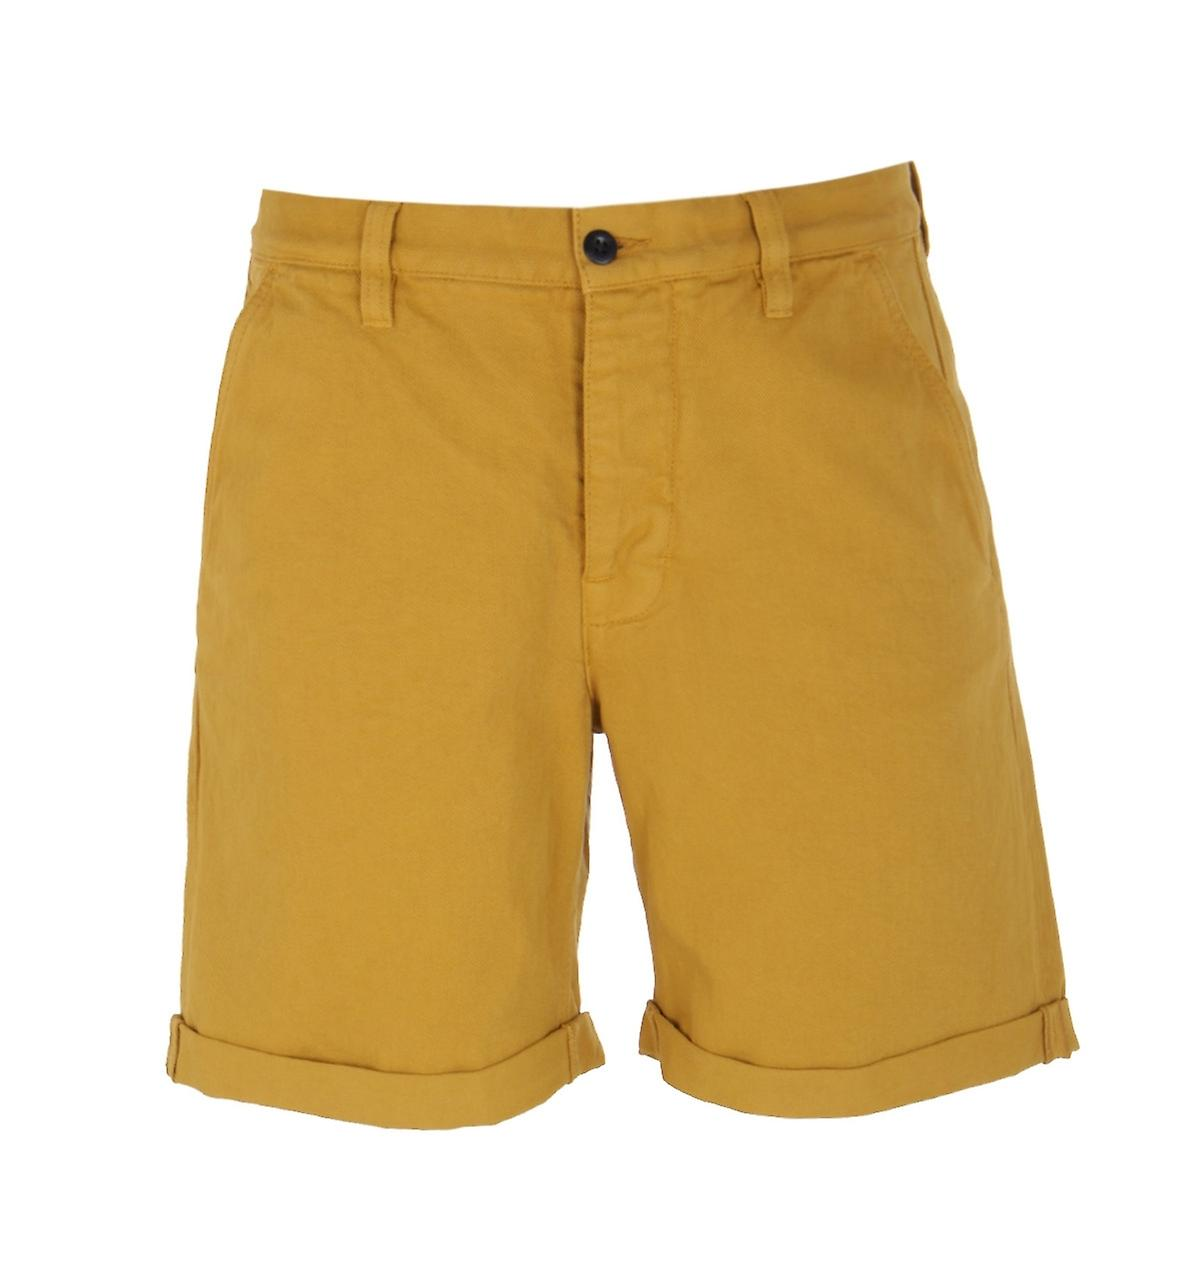 Nudie Jeans Co Luke Cotton Twill jaune courtes